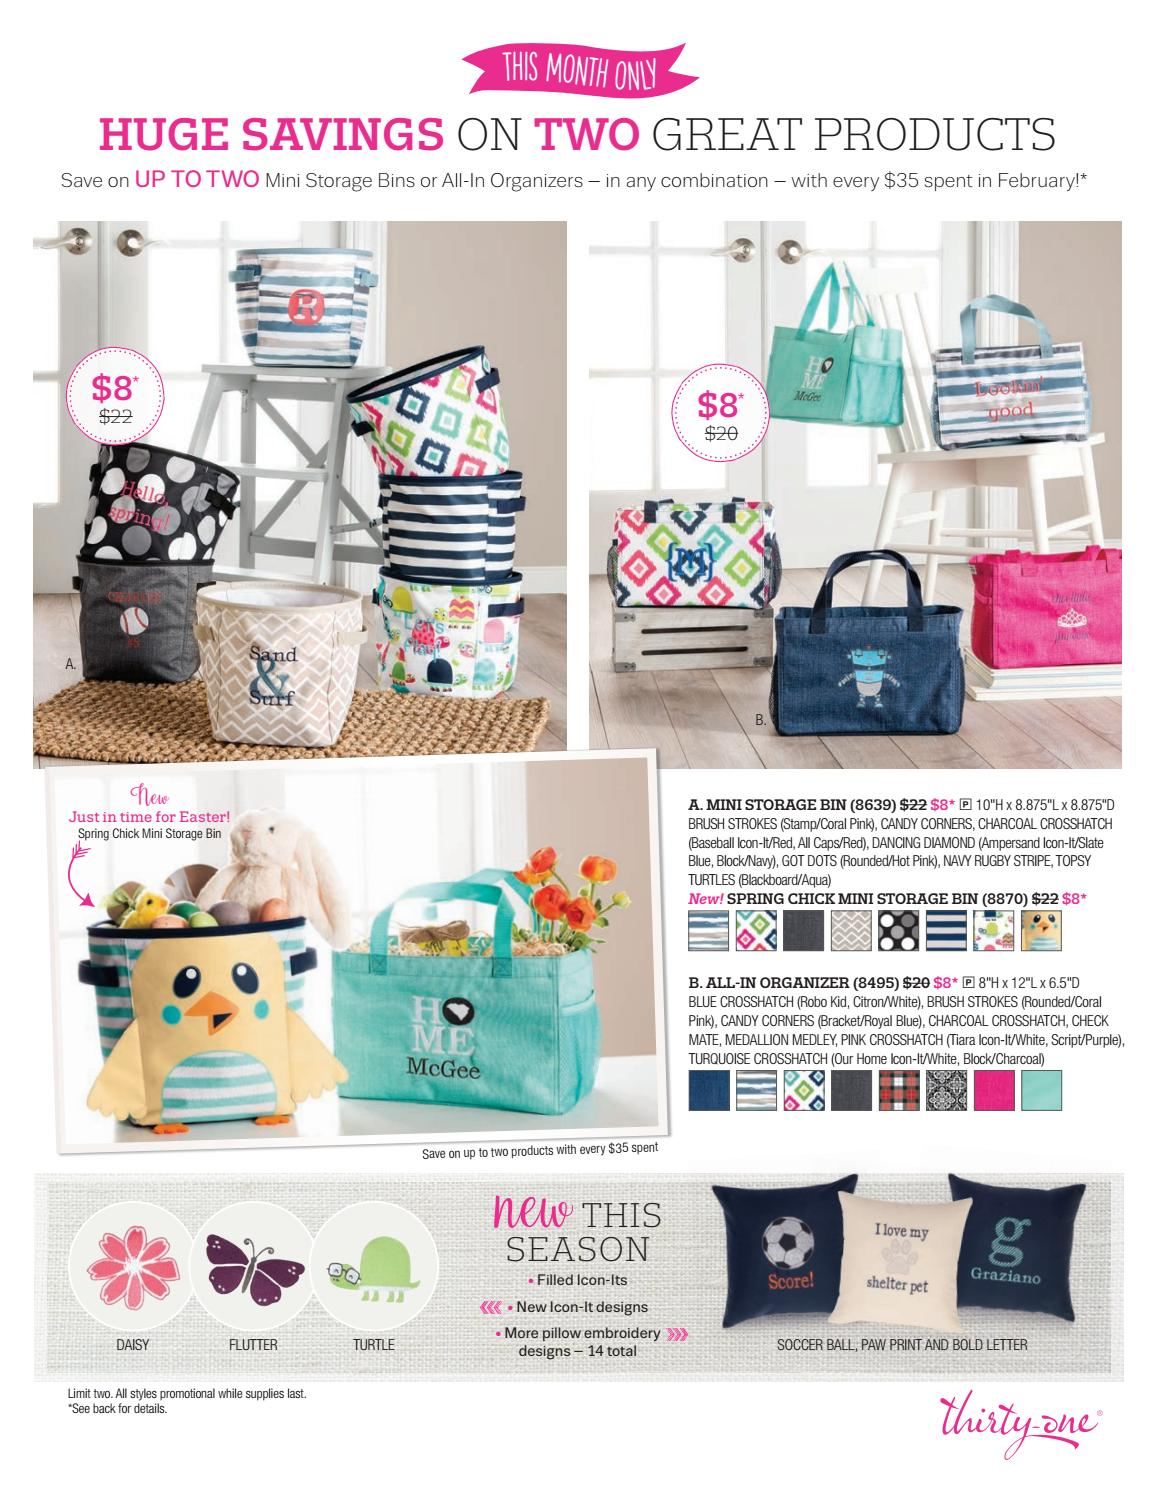 Thirty one november customer special 2014 - Thirty One Gifts February 2017 Customer Hostess Special By Amy Wilson Independent Senior Director Thirty One Gifts Issuu